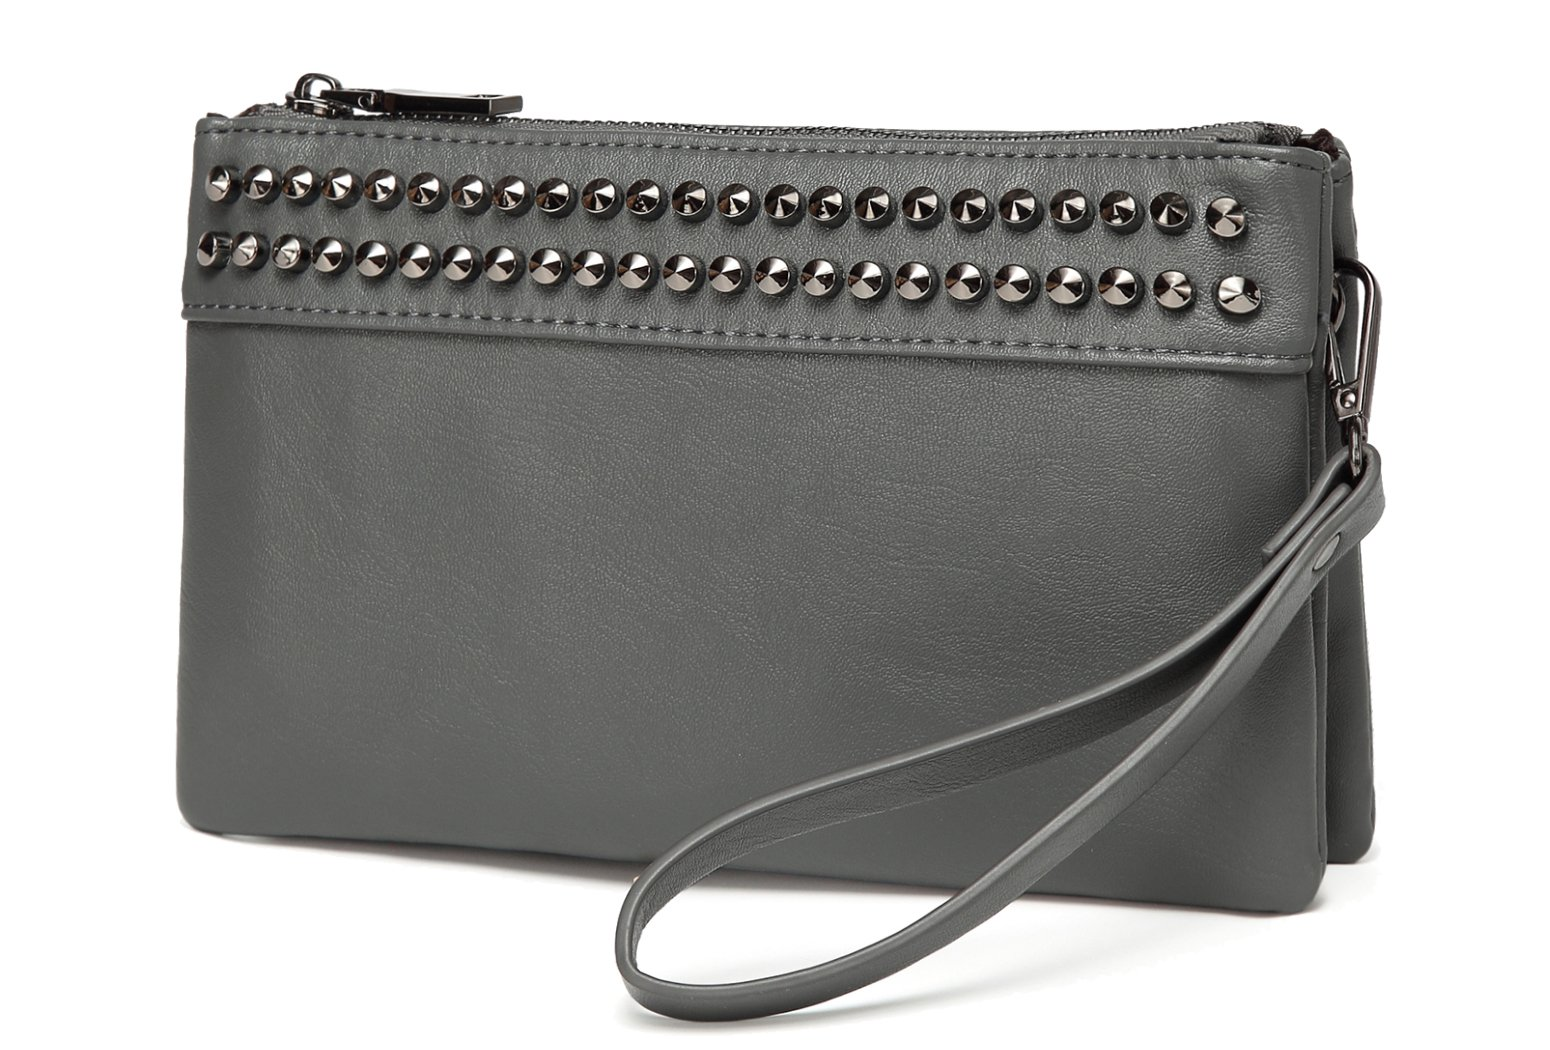 Wristlet Clutch Purses,VASCHY SAC Large Studs Soft Faux Leather Crossbody Evening Clutch Wallet for Women Gray